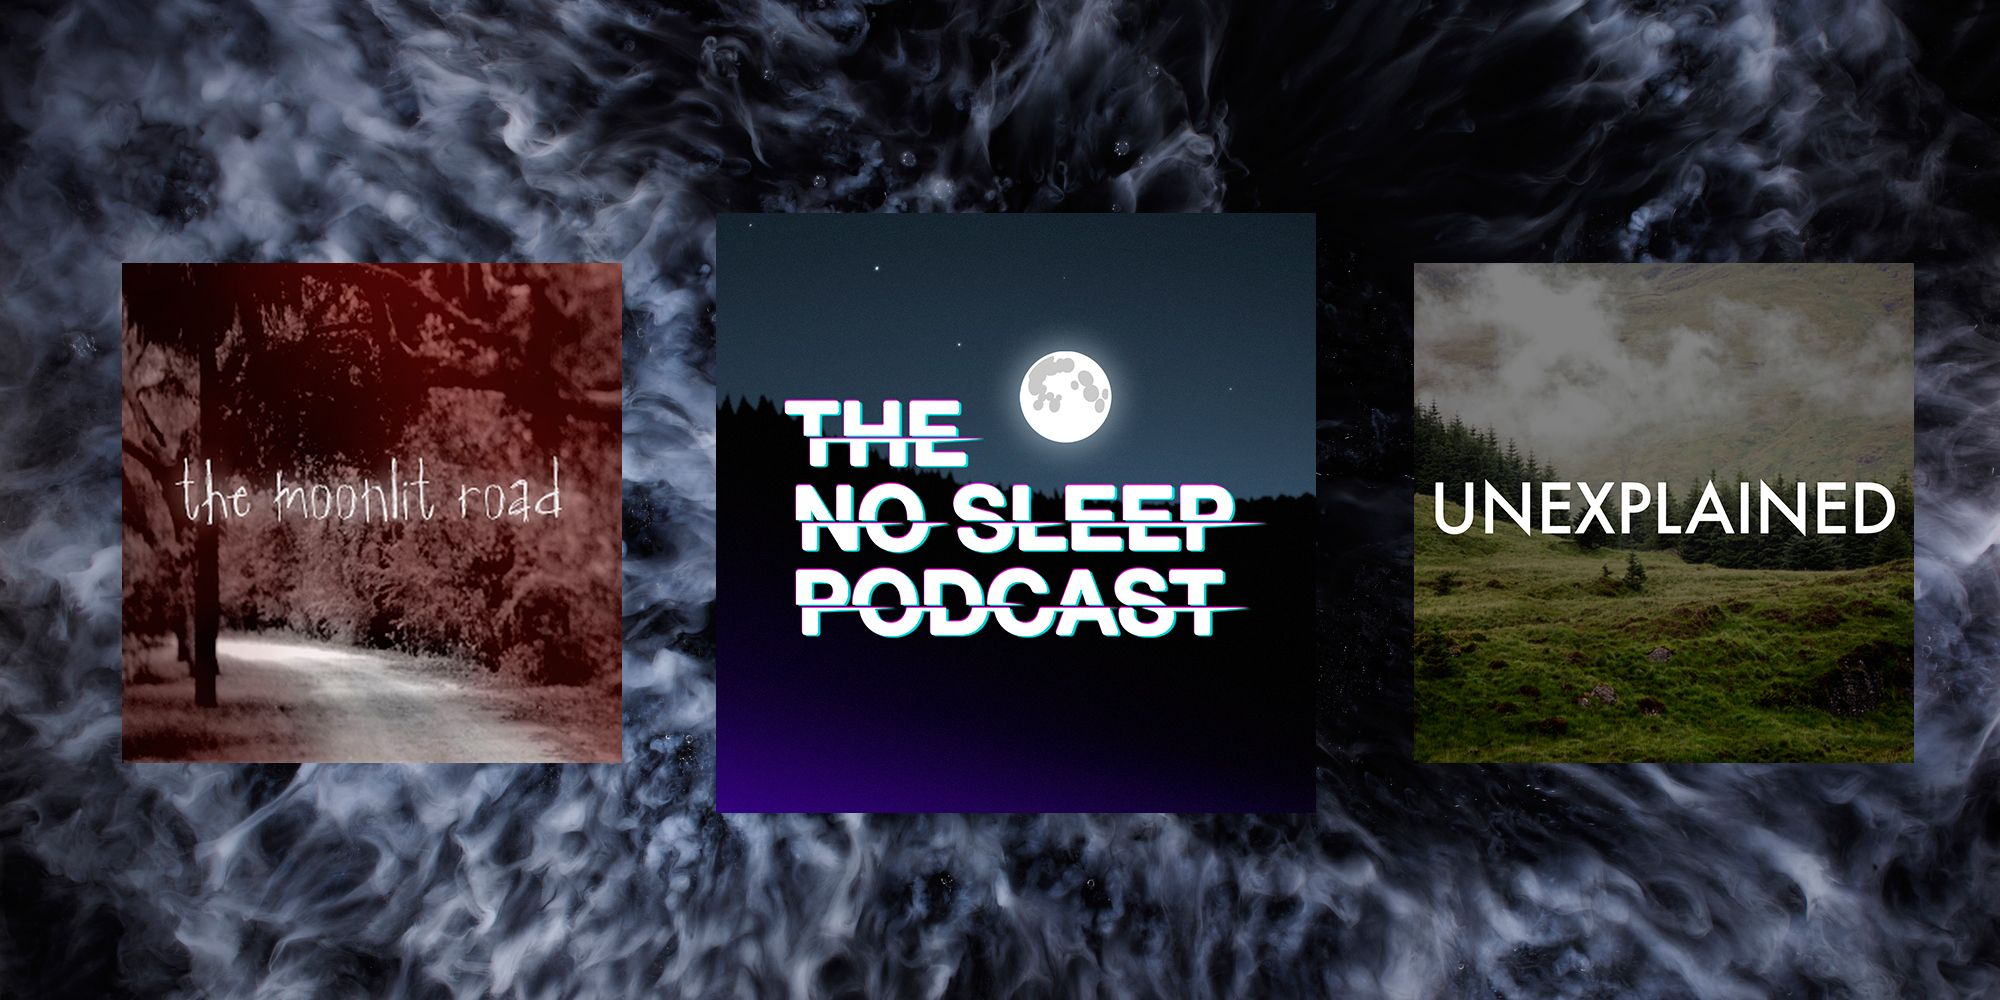 12 Creepy Podcasts To Send Shivers Down Your Spine